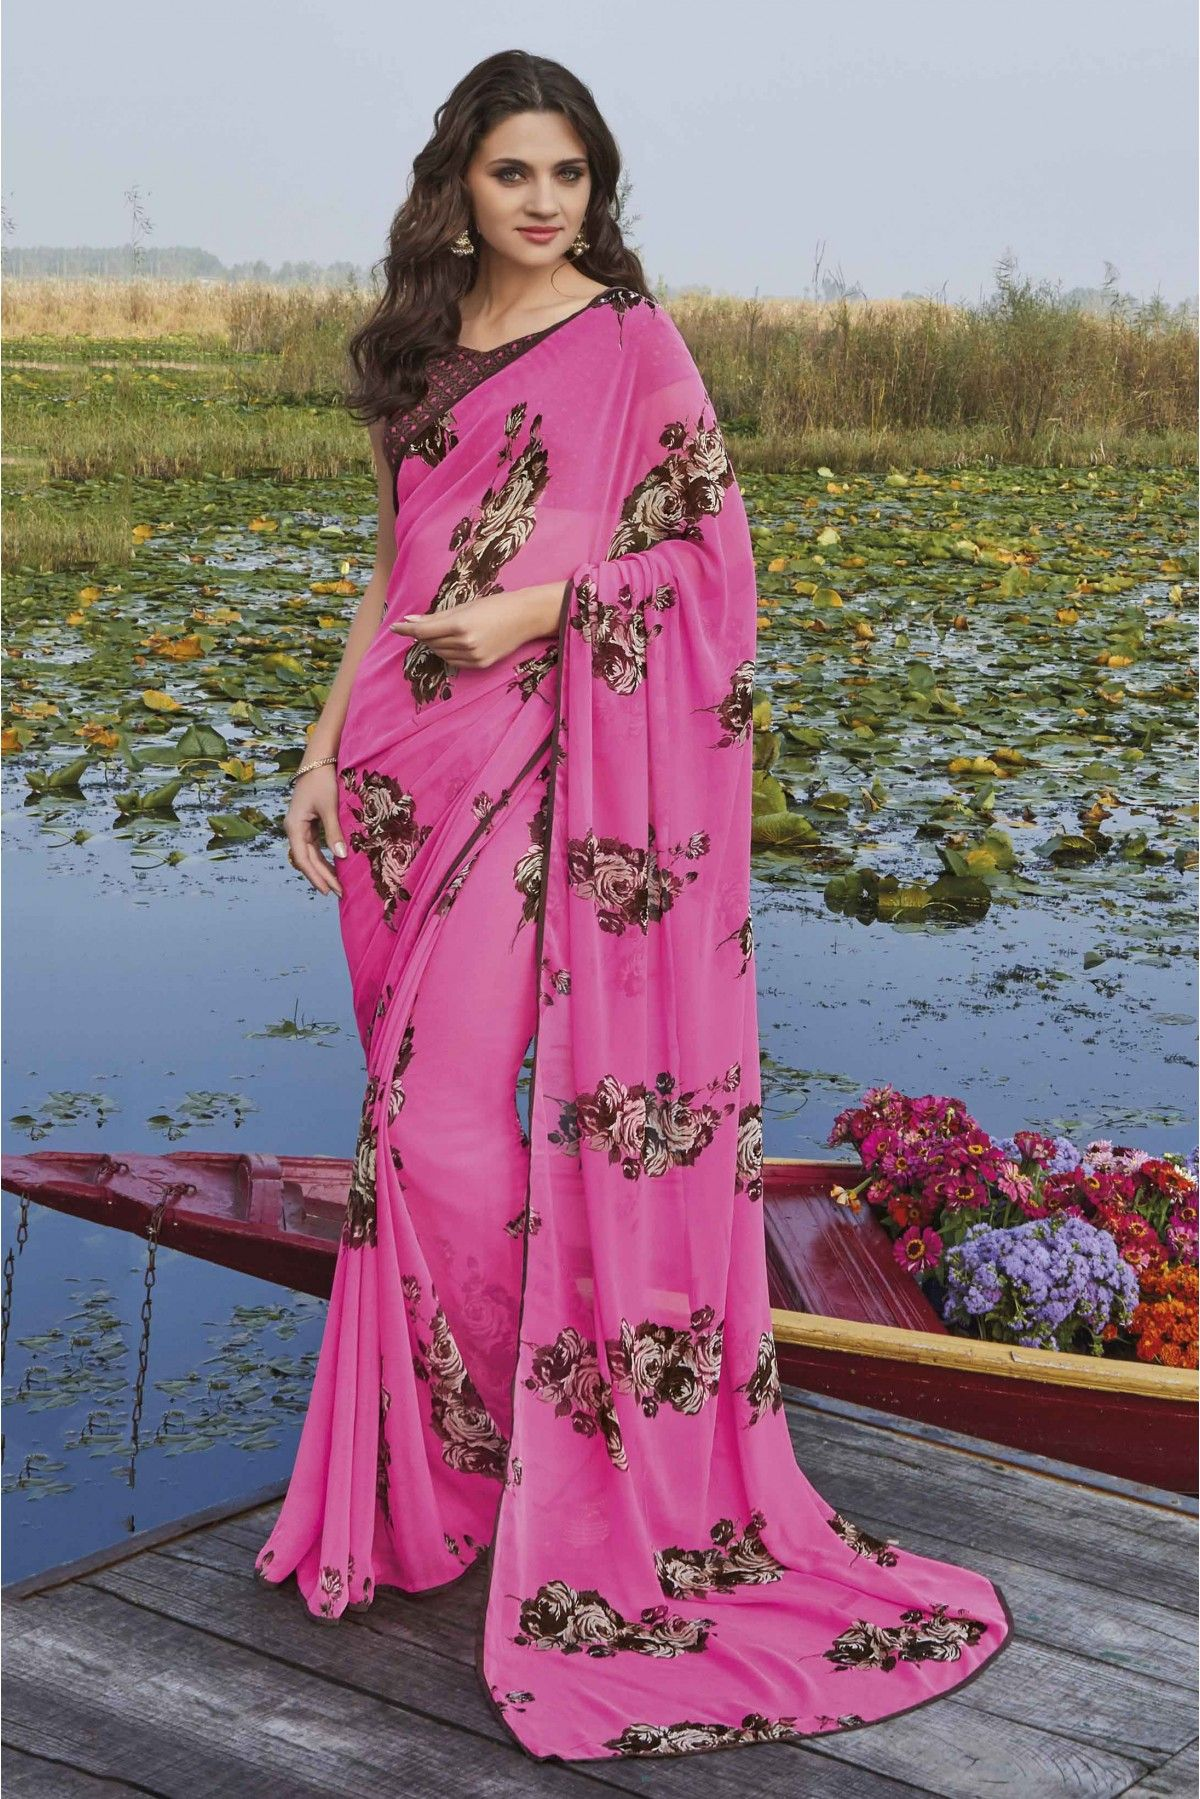 0ba17e5d6a47bd Pink Colour Georgette Fabric Casual Wear Printed Saree Comes With Matching  Blouse. This Saree Is